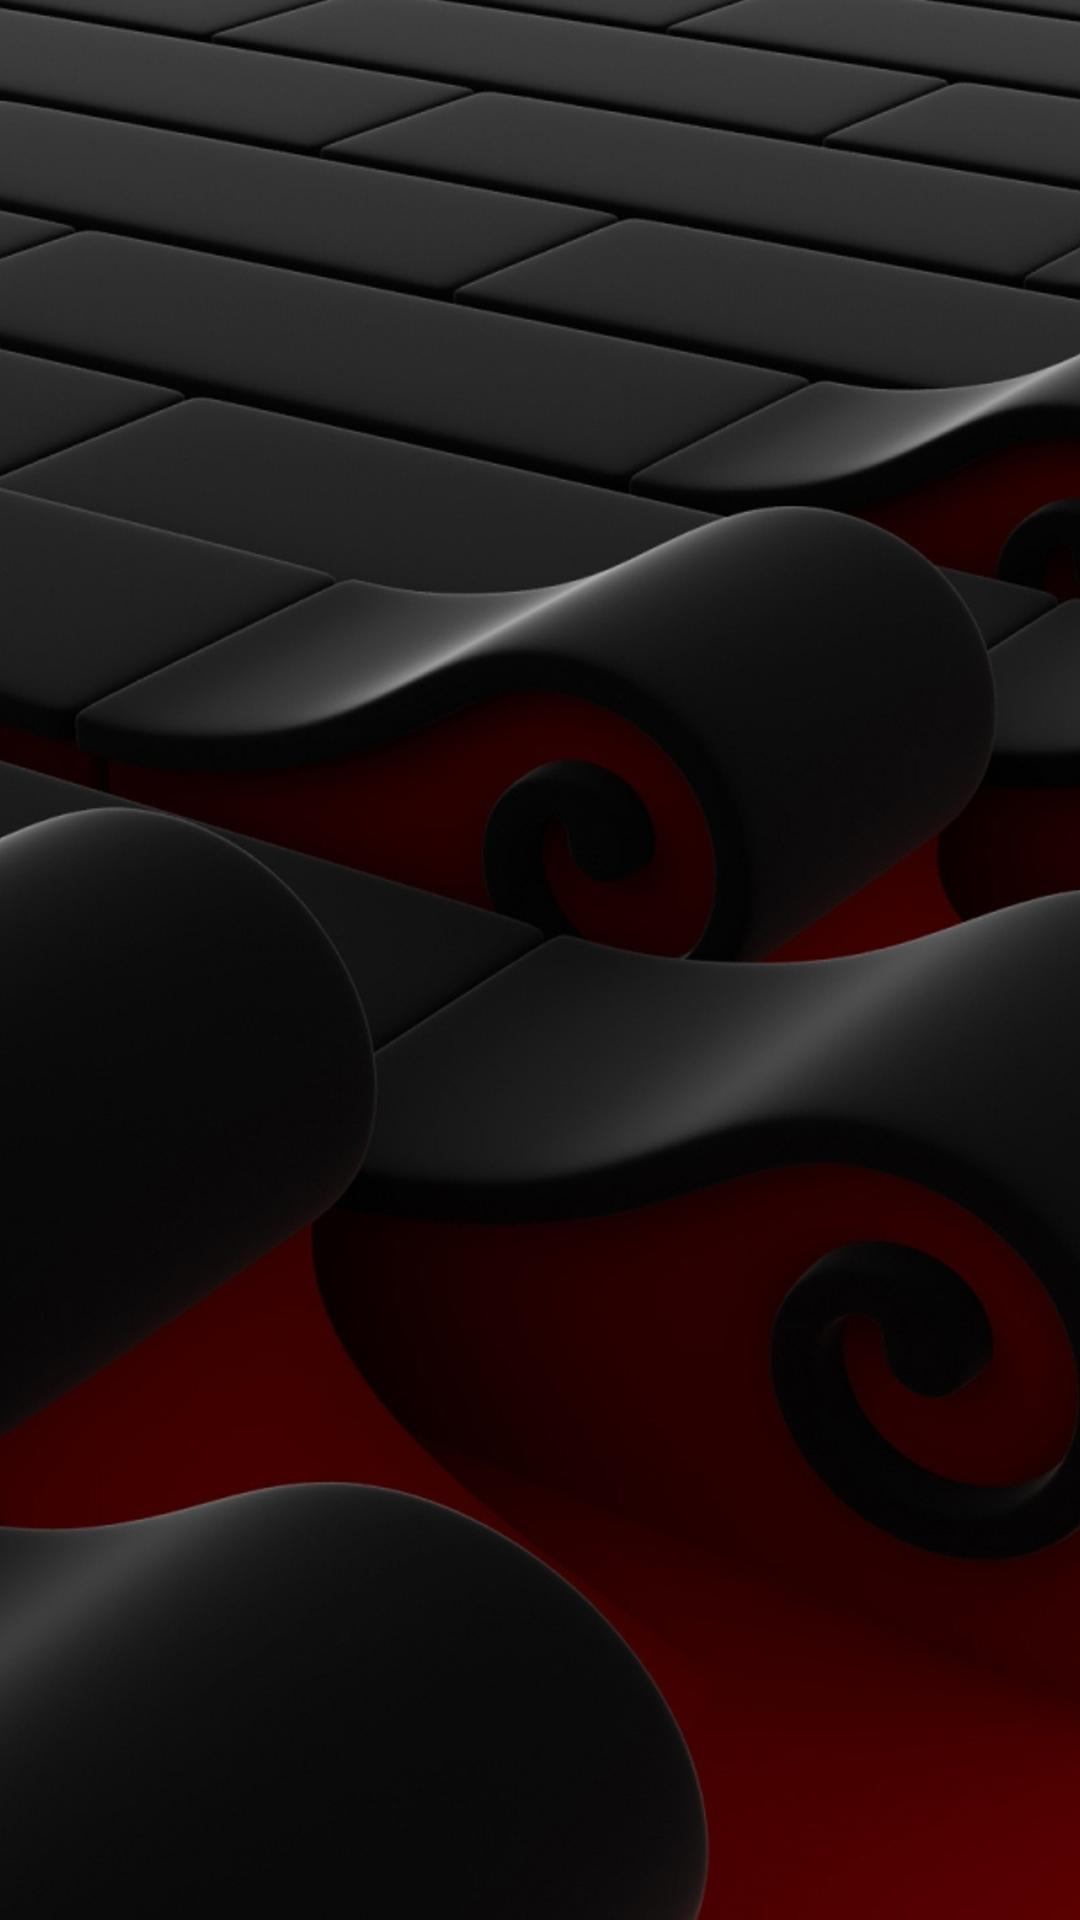 Cute Halloween Wallpapers For Android Abstract 3d Black And Red Waves Wallpaper Download 1080x1920